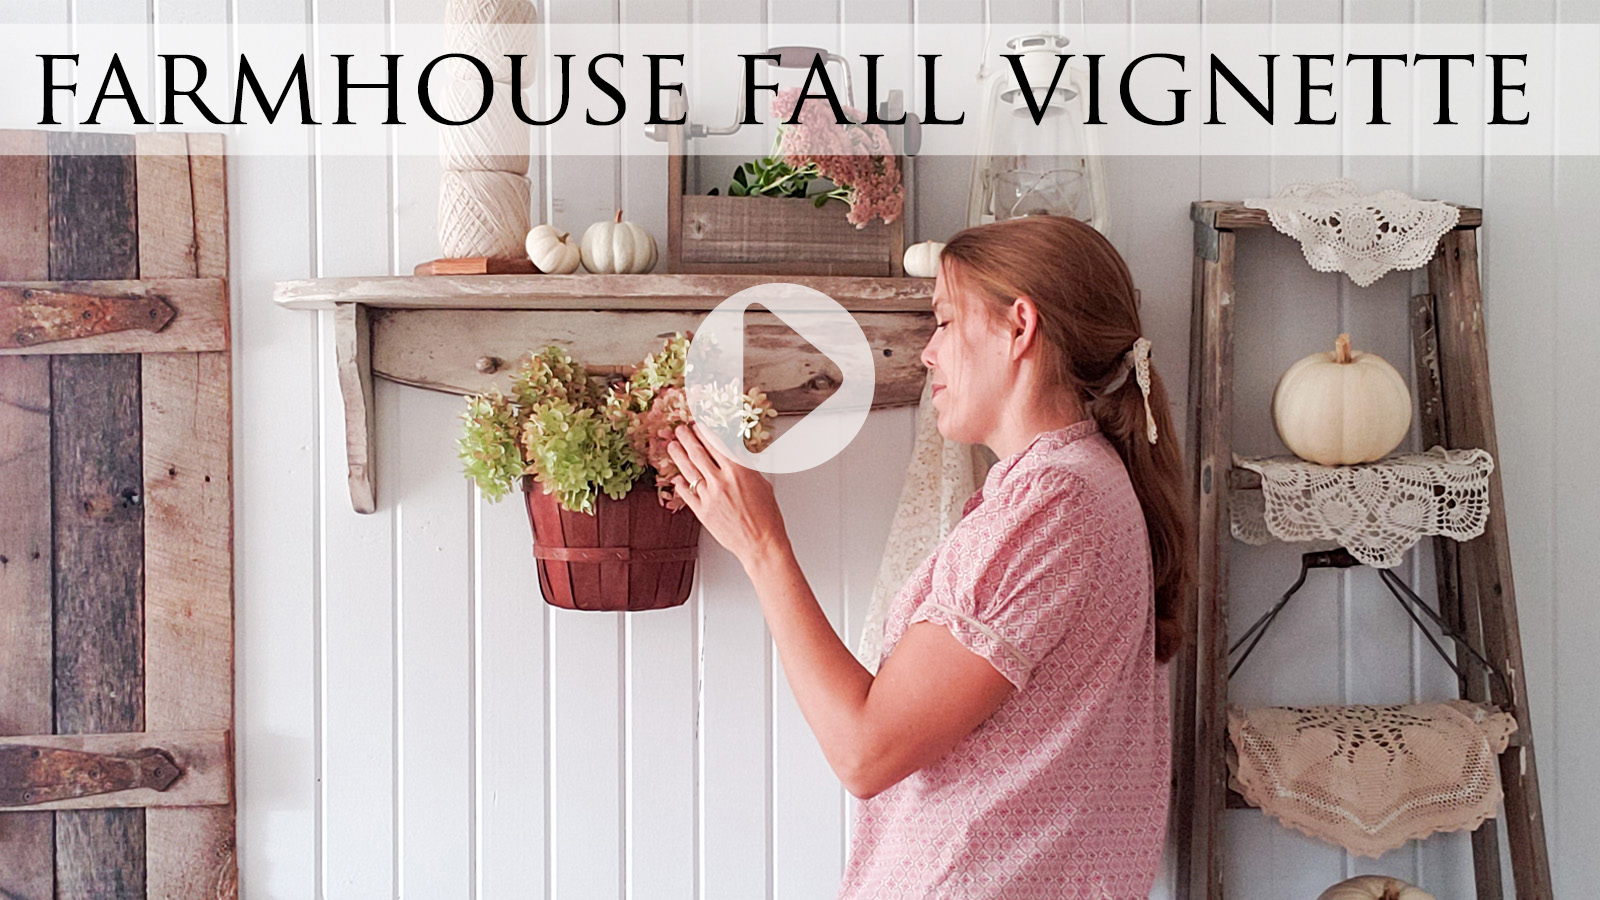 Create a Farmhouse Fall Vignette with Thrifted Finds by Larissa of Prodigal Pieces | prodigalpieces.com #prodigalpieces